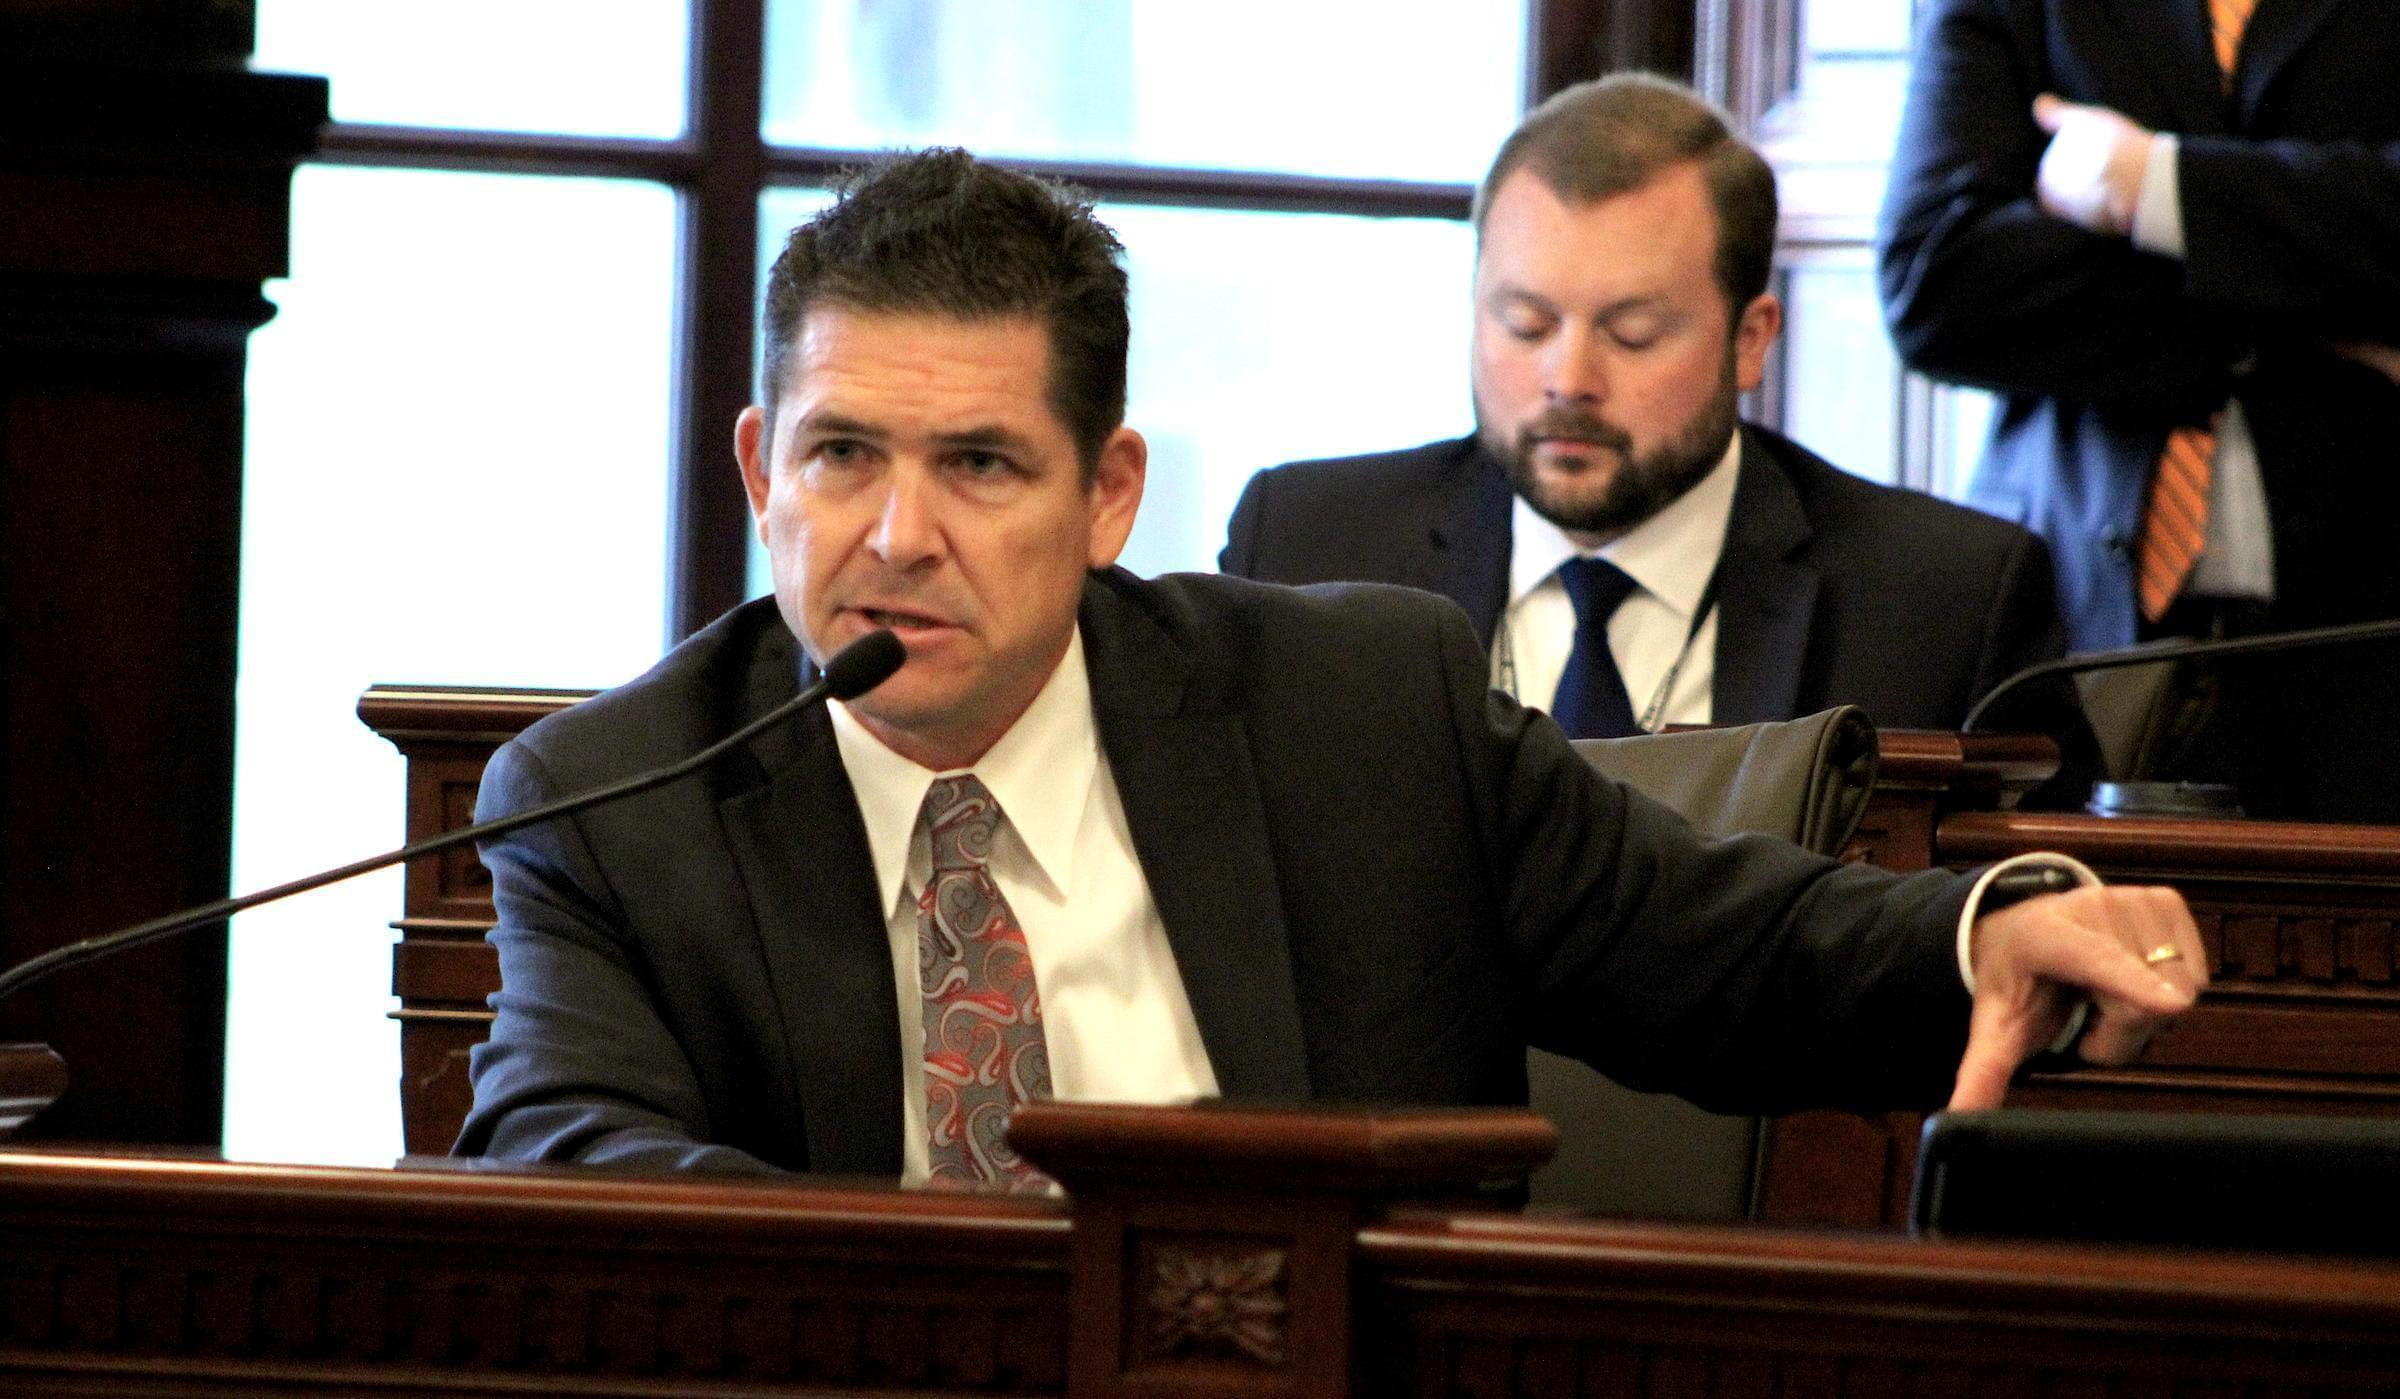 State Sen. Kyle McCarter, a Republican from Lebanon, speaks during an Illinois Senate committee hearing in April 2017.